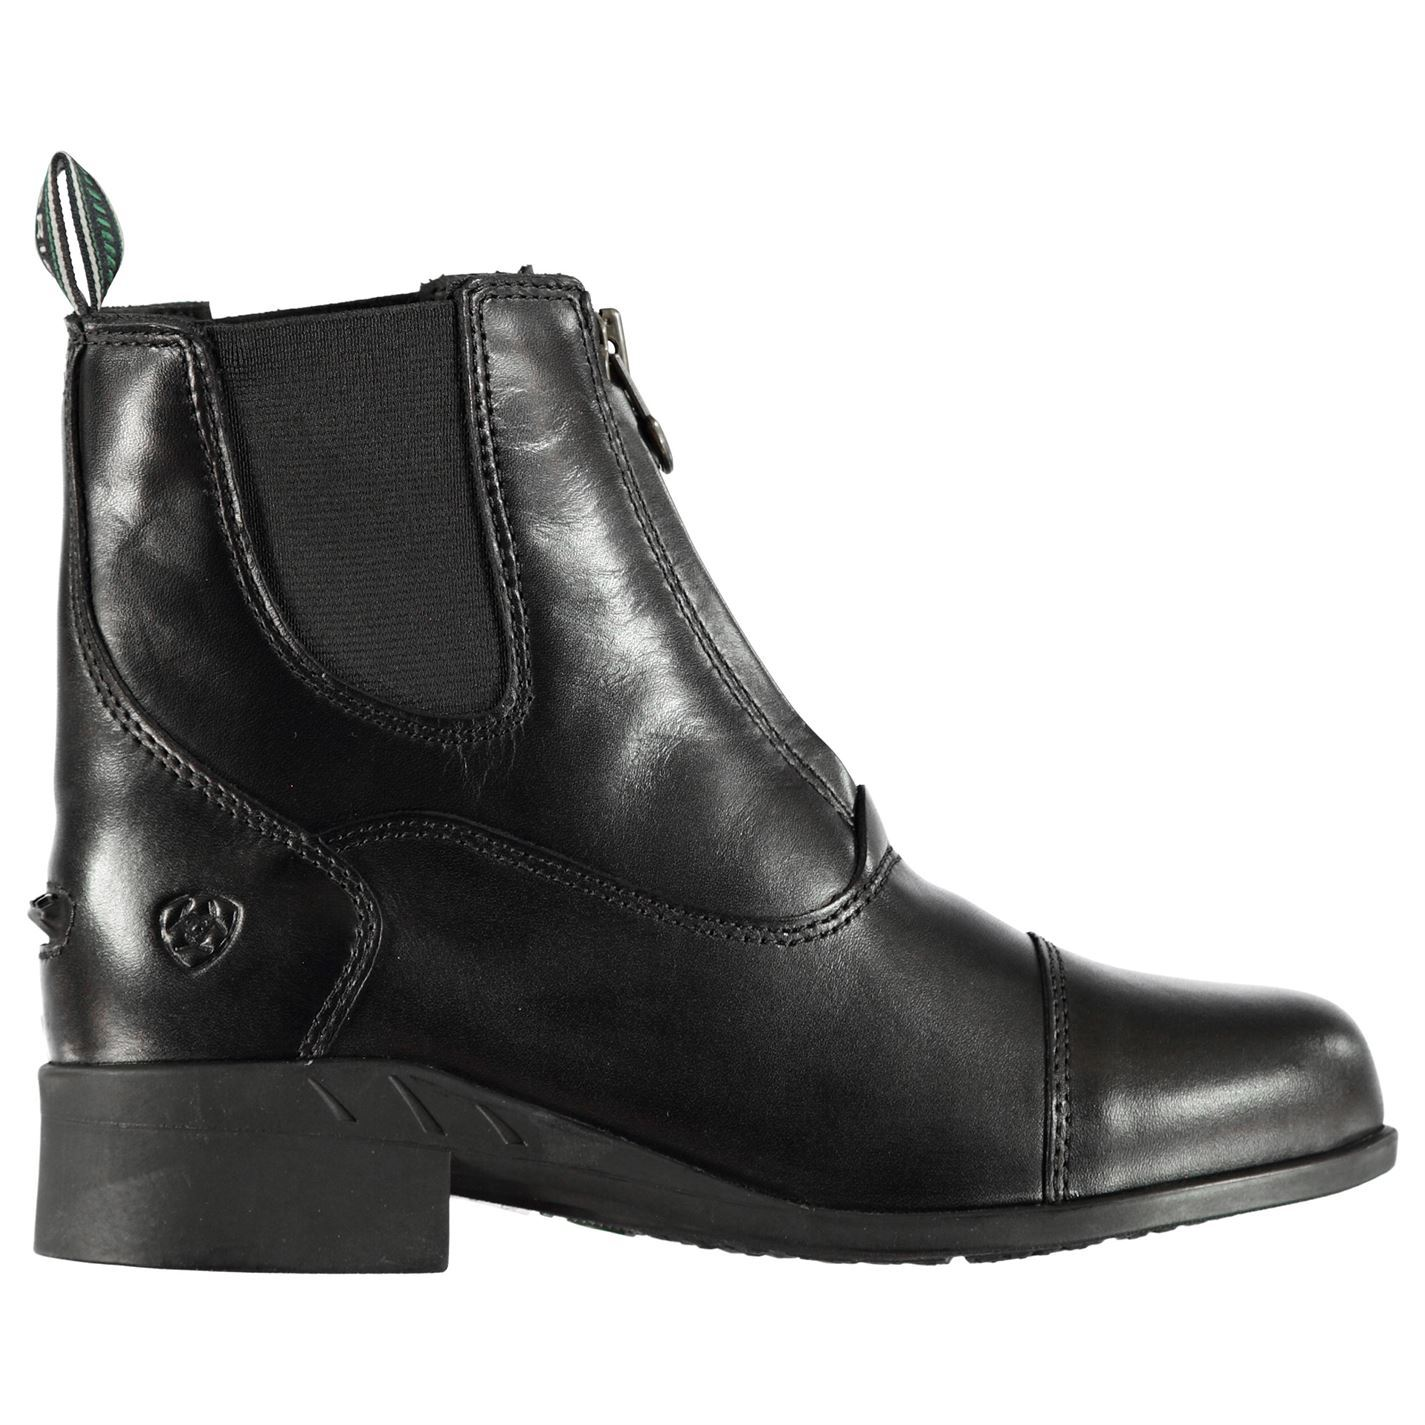 large discount outlet cheaper Details about Ariat Devon IV Paddock Boots Juniors Boys Shoes Boot Kids  Footwear